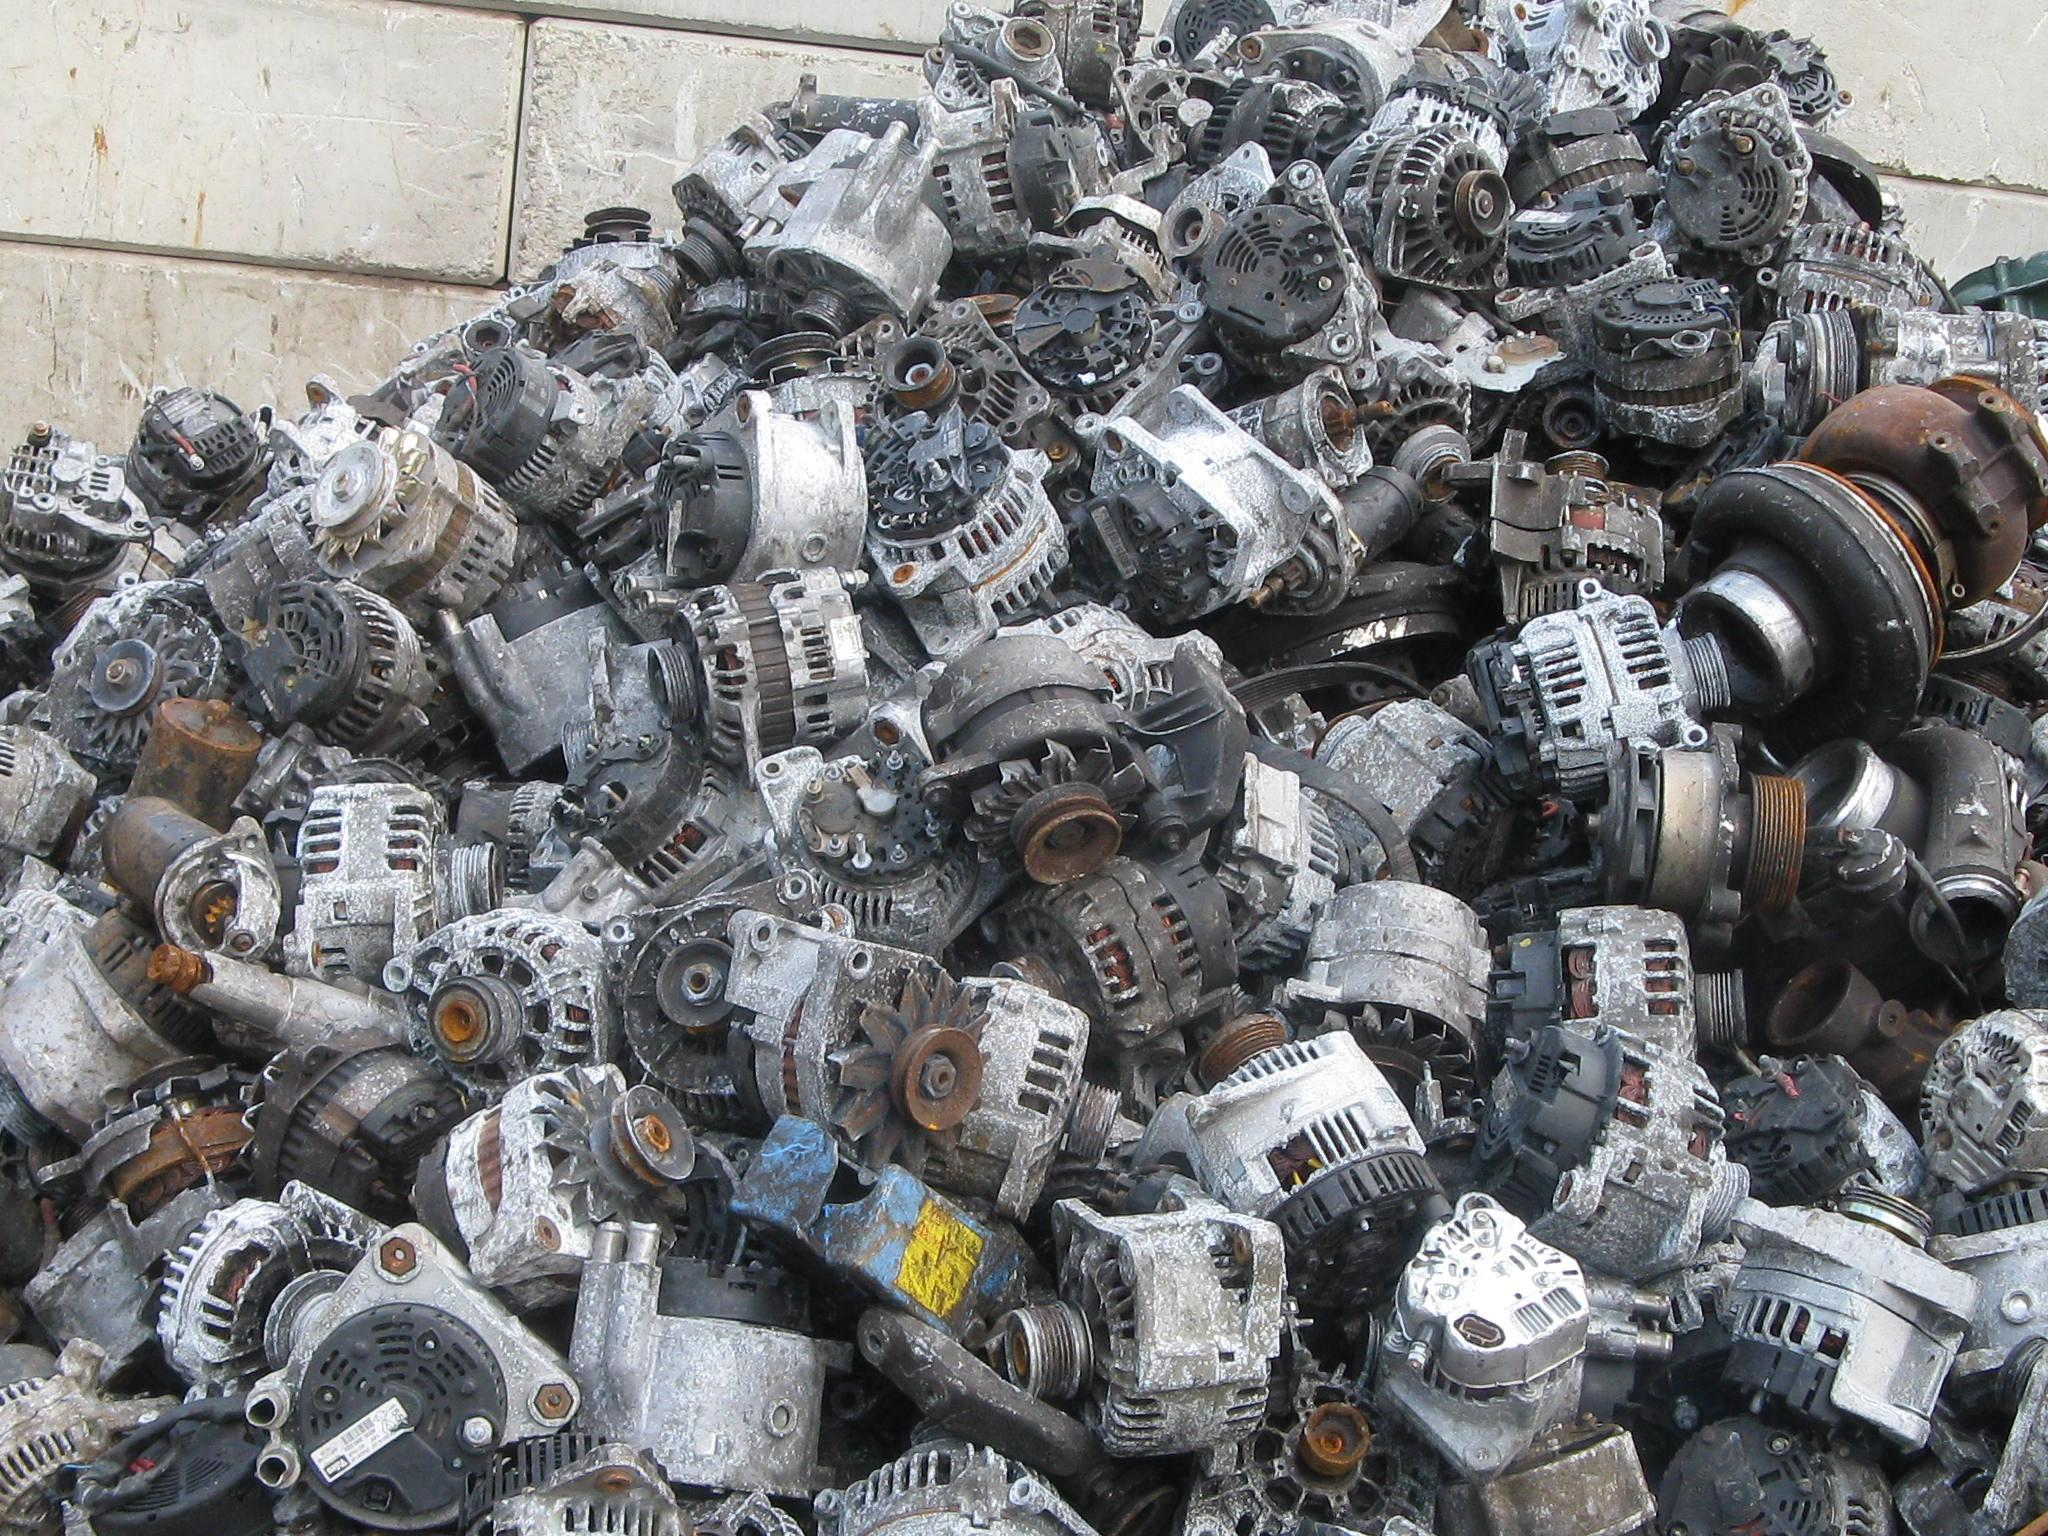 Motor Recycling Machines